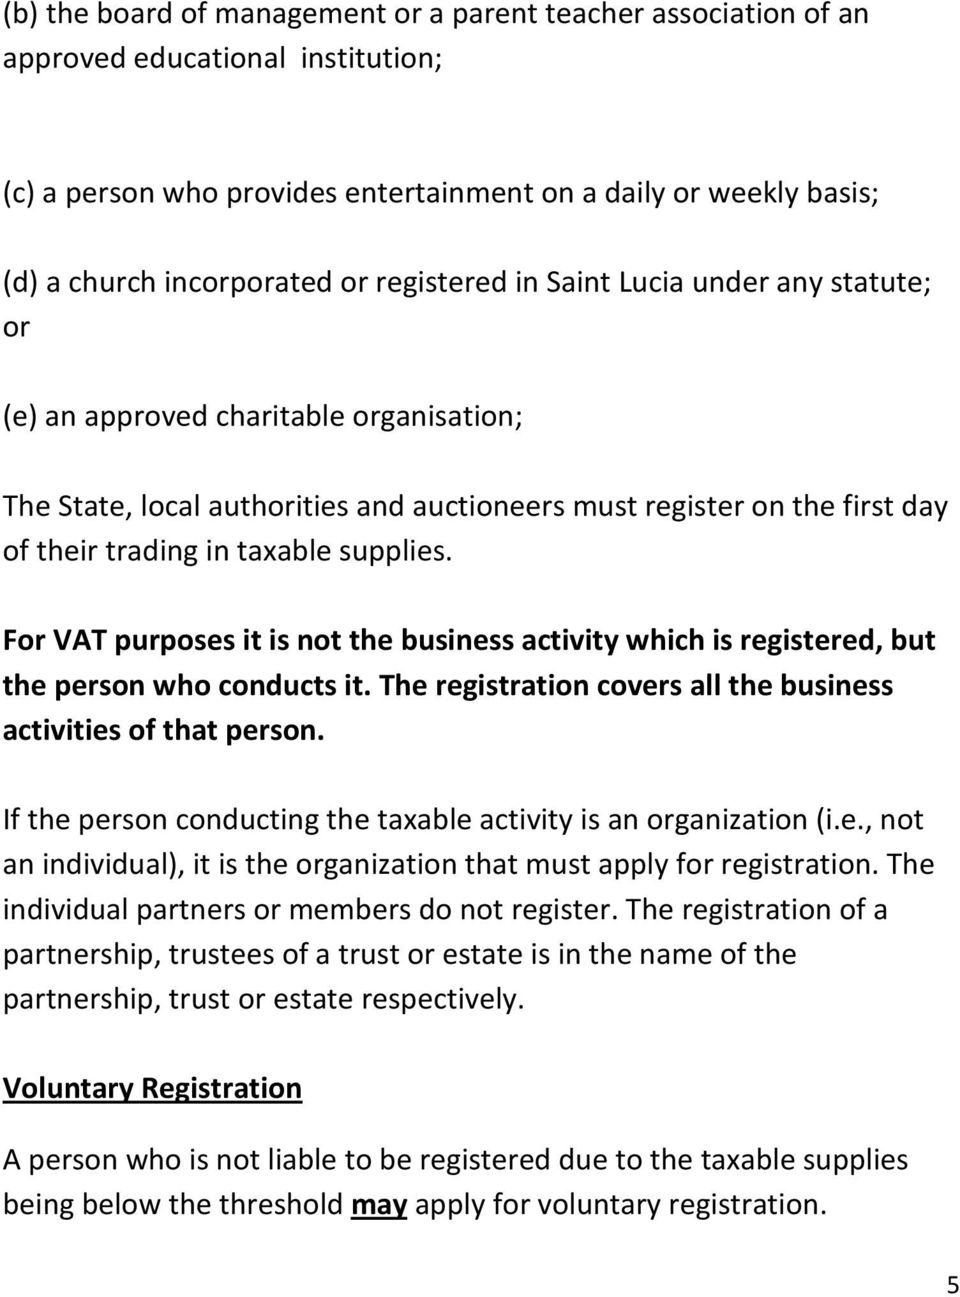 supplies. For VAT purposes it is not the business activity which is registered, but the person who conducts it. The registration covers all the business activities of that person.